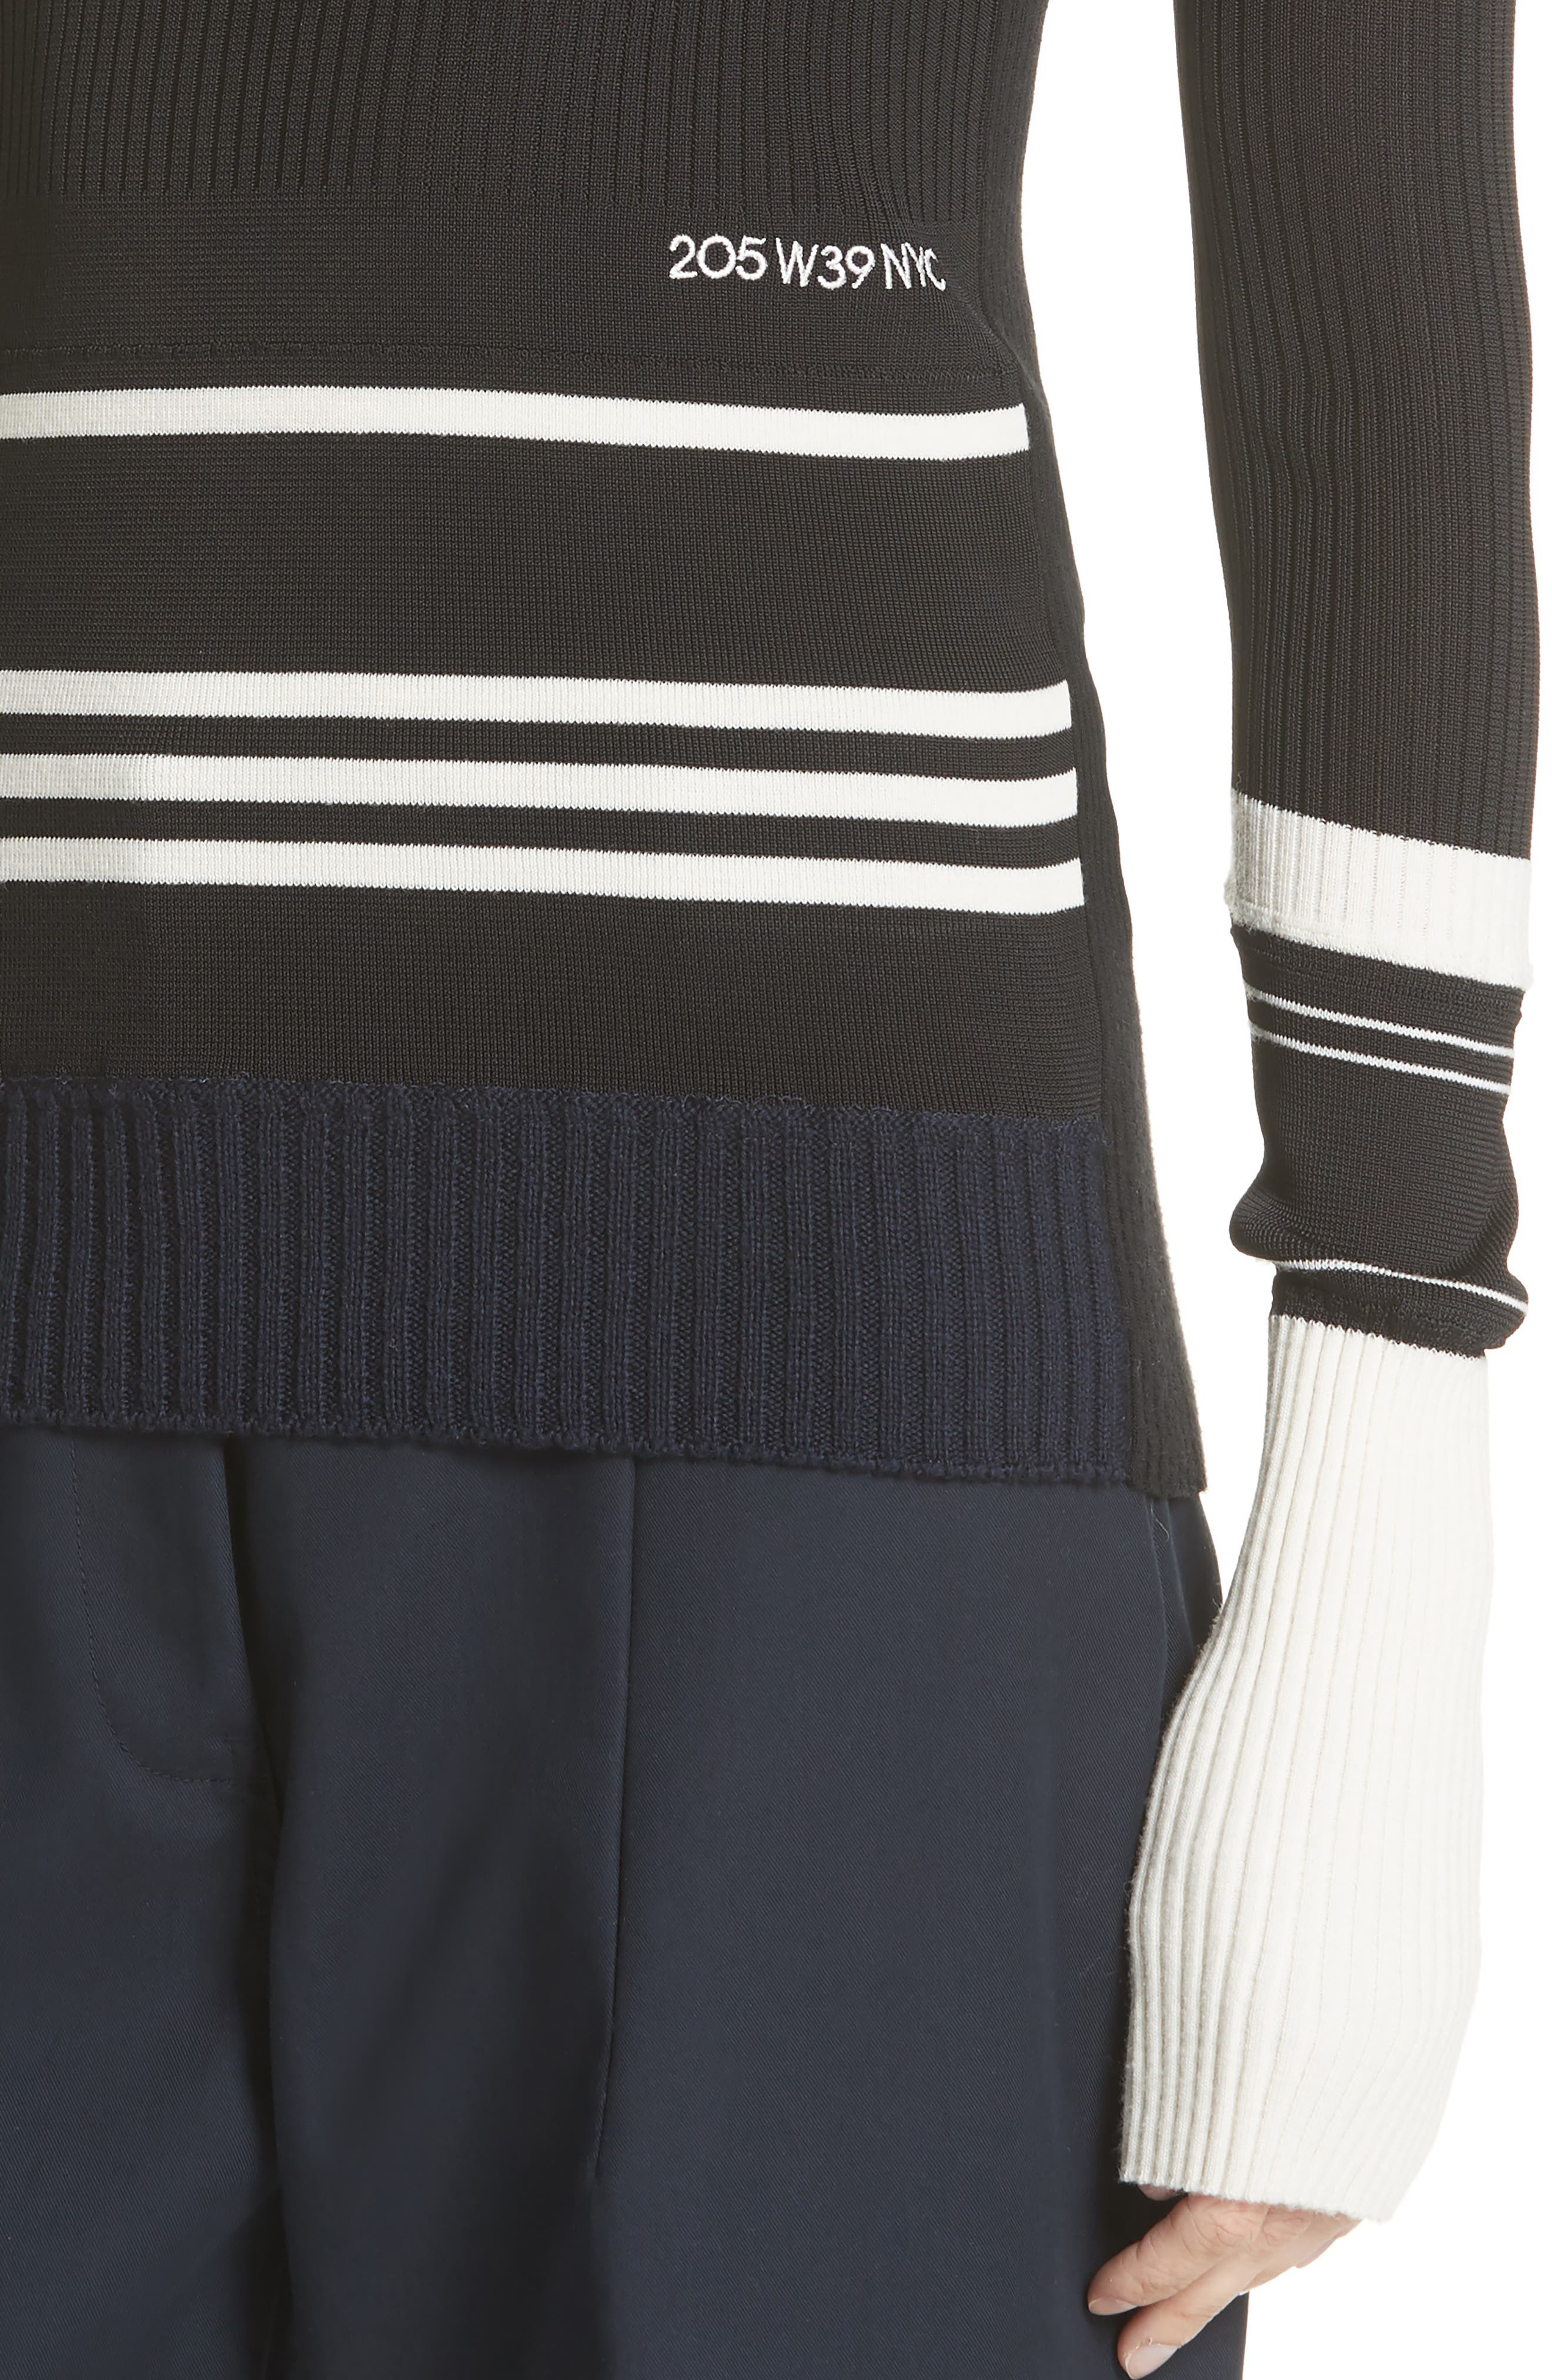 Varsity Stripe Colorblock Sweater,                             Alternate thumbnail 4, color,                             BLACK IVORY NAVY